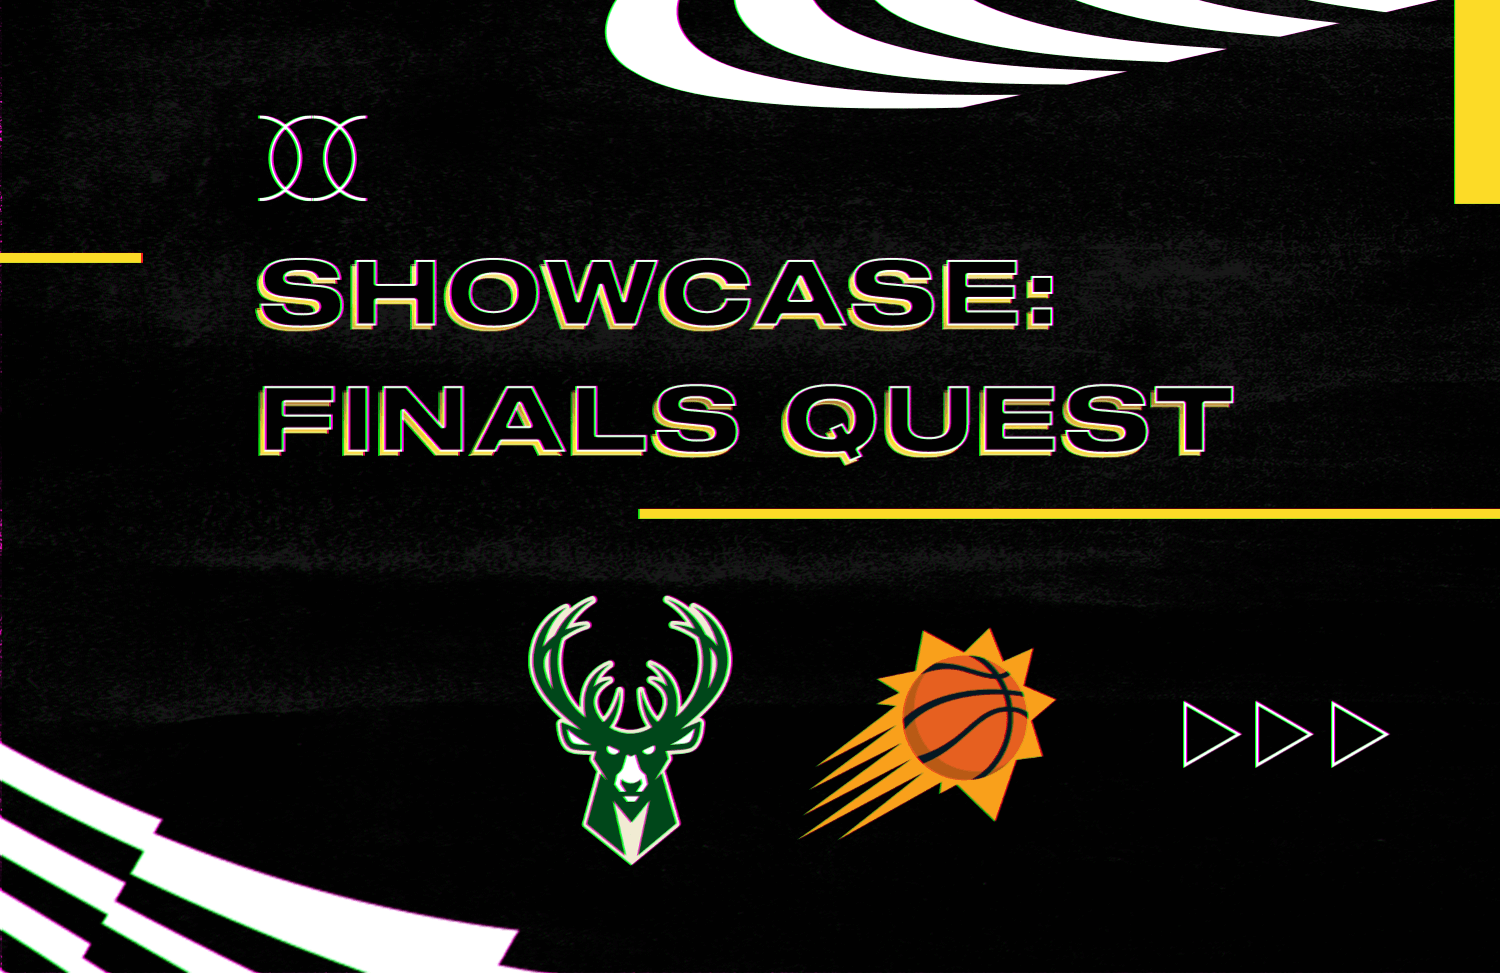 A new Quest for every game of the Finals.